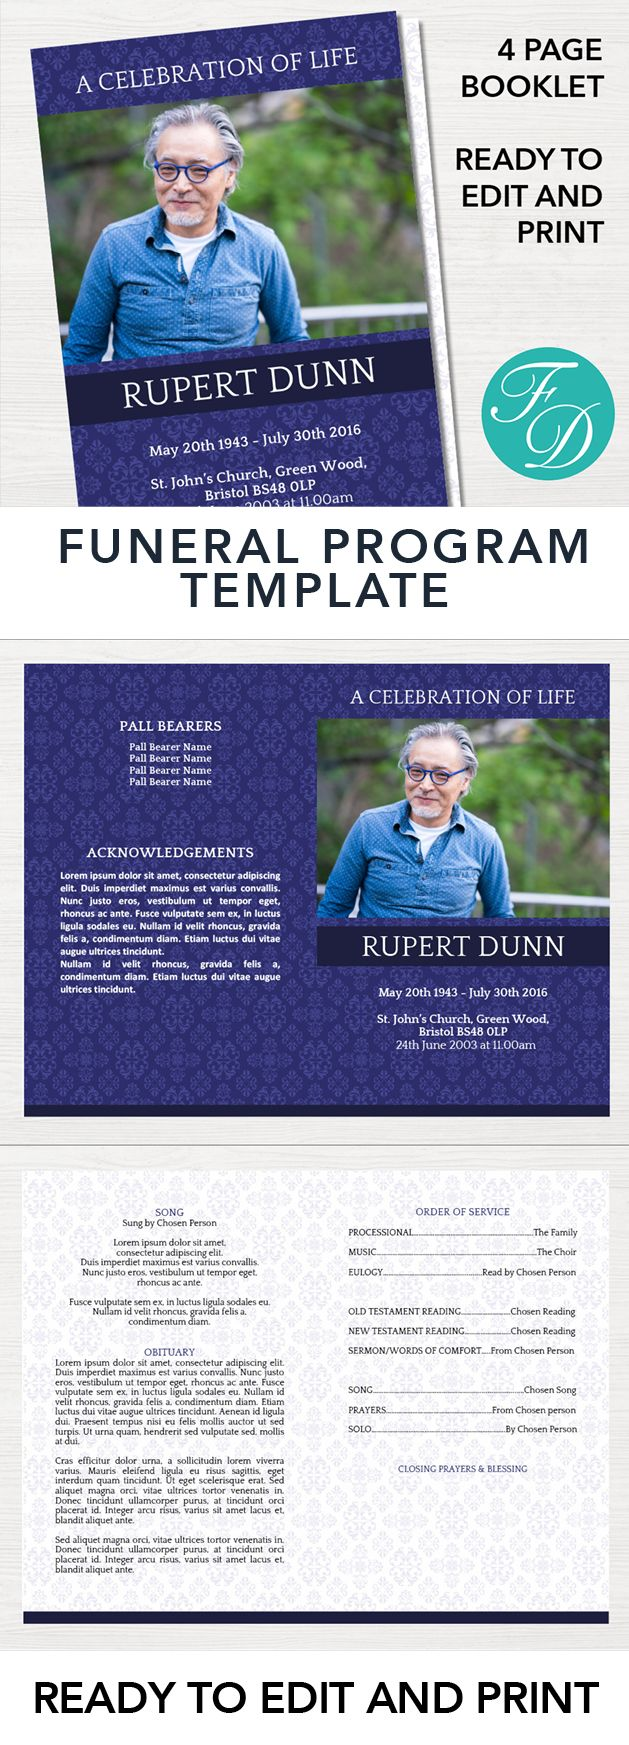 Printable Funeral program ready to edit & print. Simply purchase your funeral templates, download, edit with Microsoft Word and print. #obituarytemplate #memorialprogram #funeralprograms #funeraltemplate #printableprogram #celebrationoflife #funeralprogamtemplates